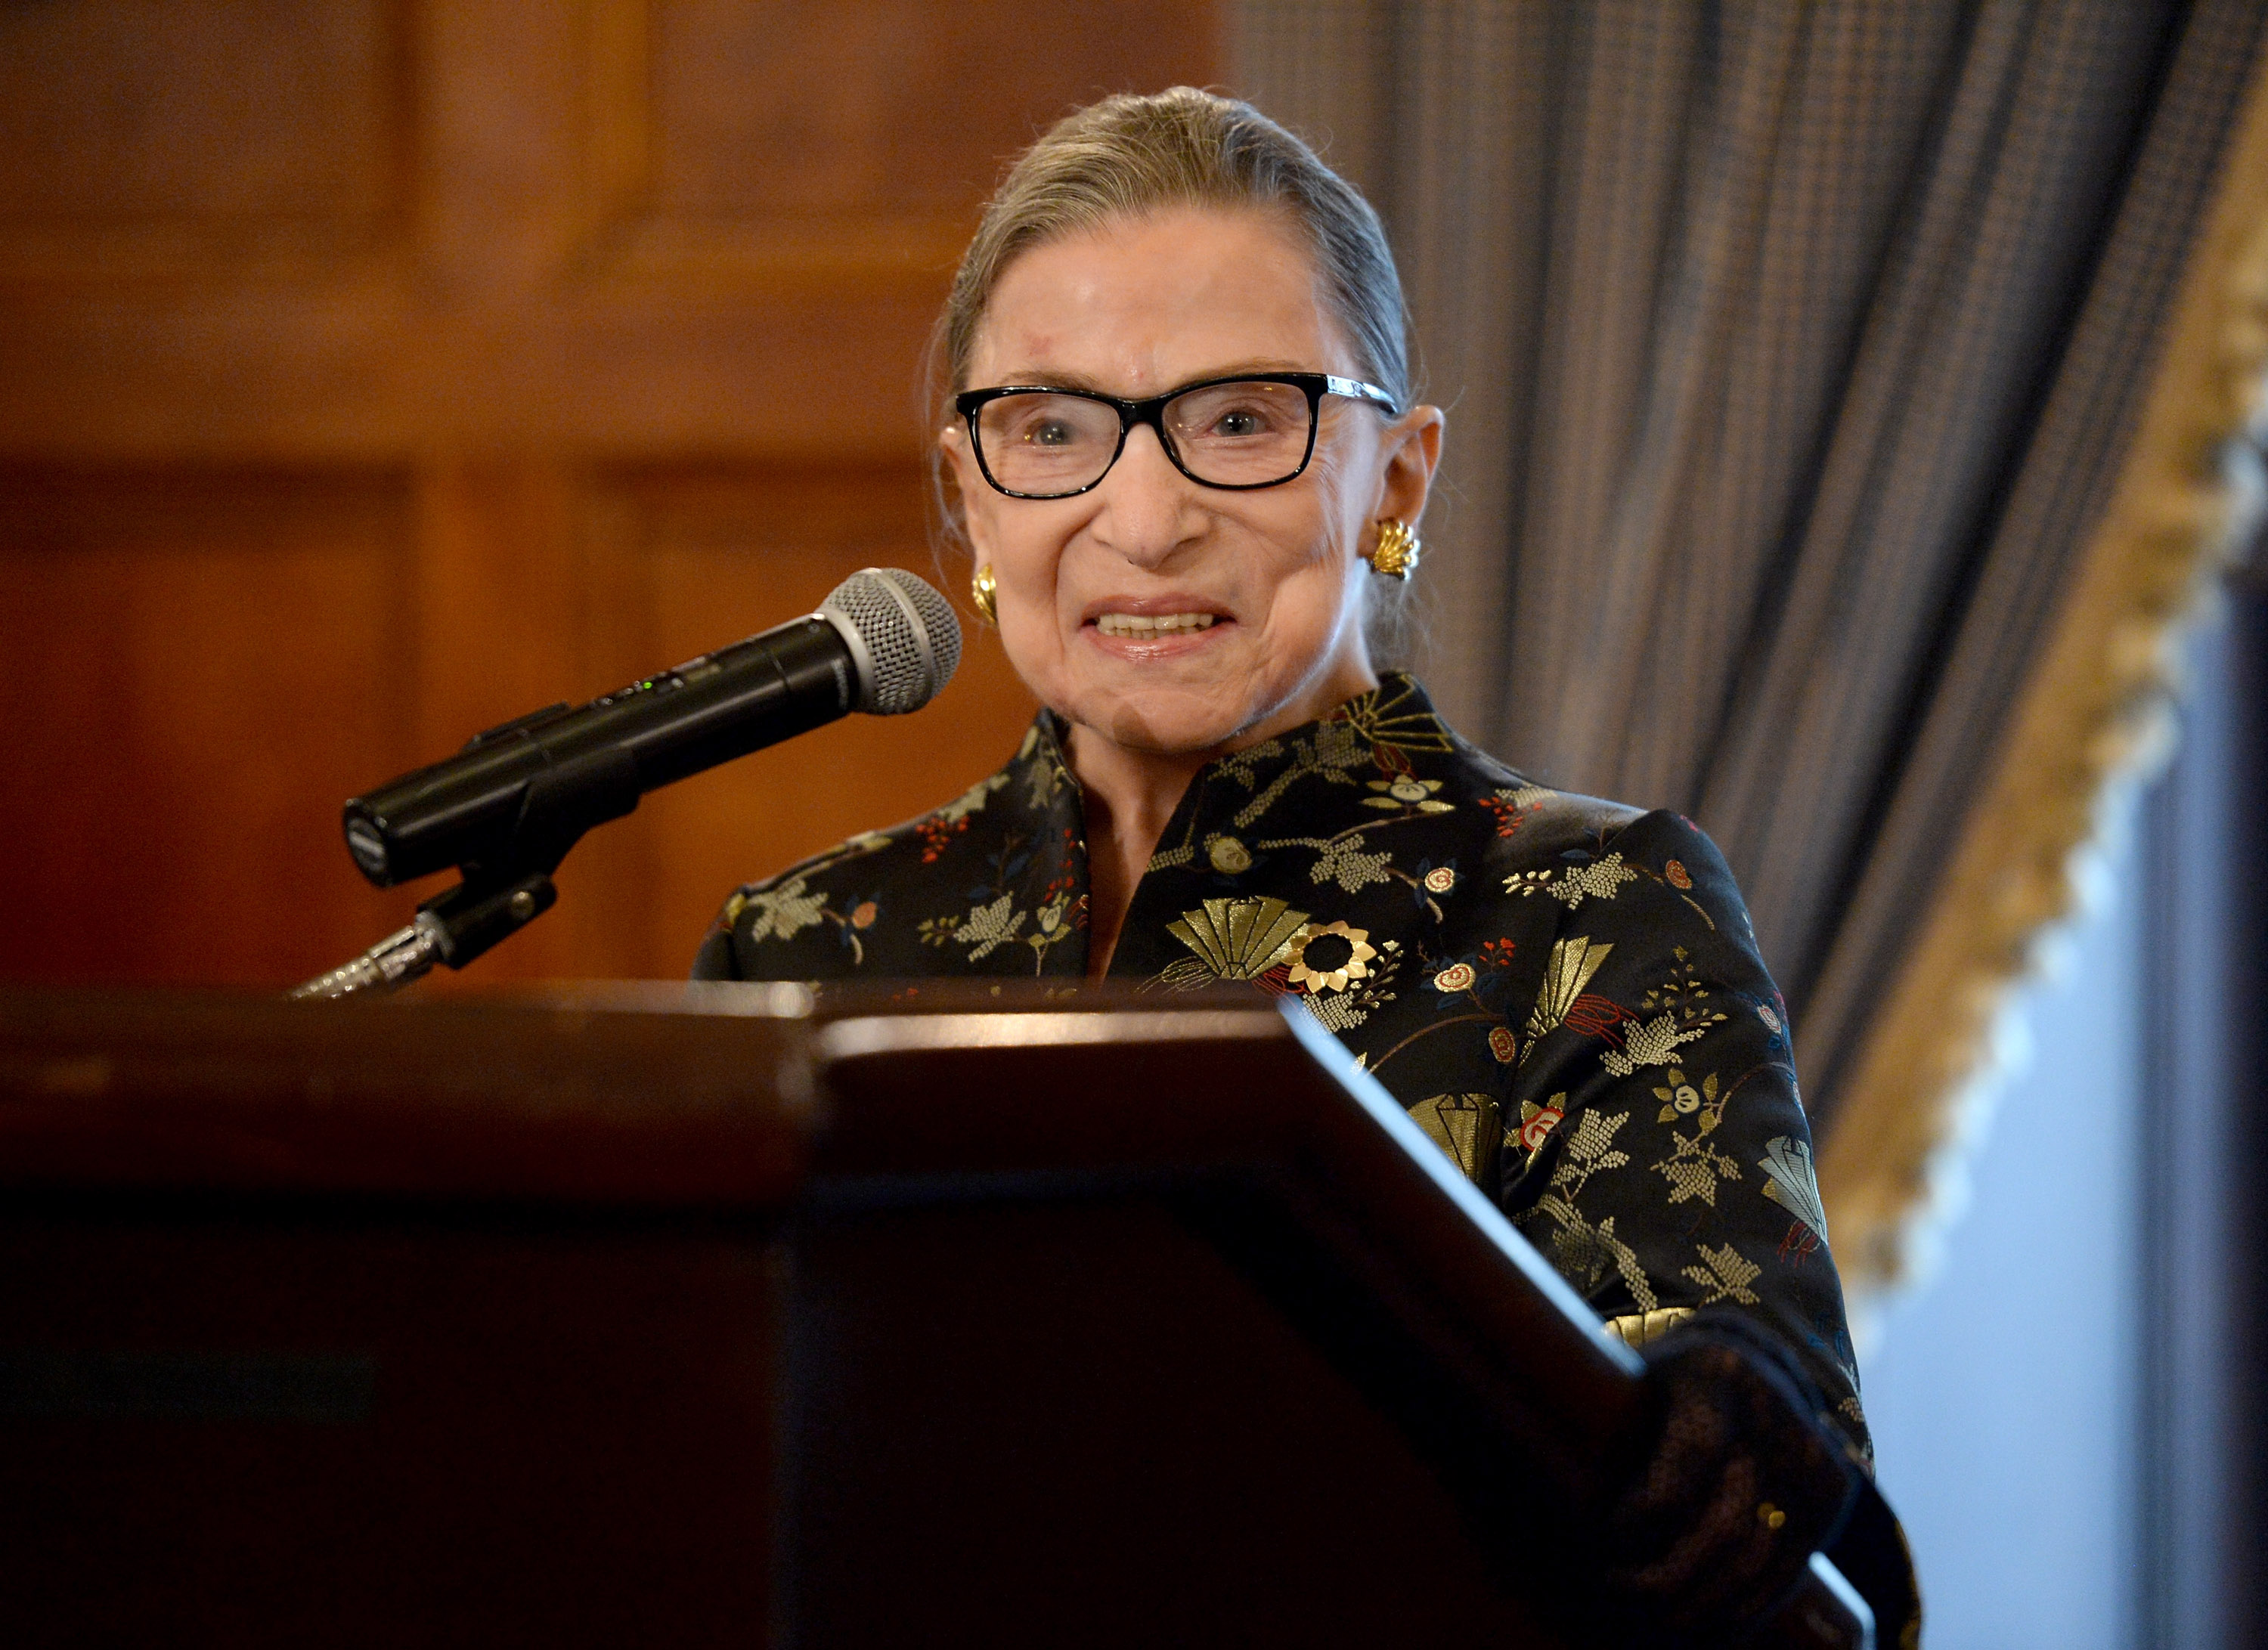 Ruth Bader Ginsburg Just Officiated a Wedding That Was Planned Entirely Around Her Schedule